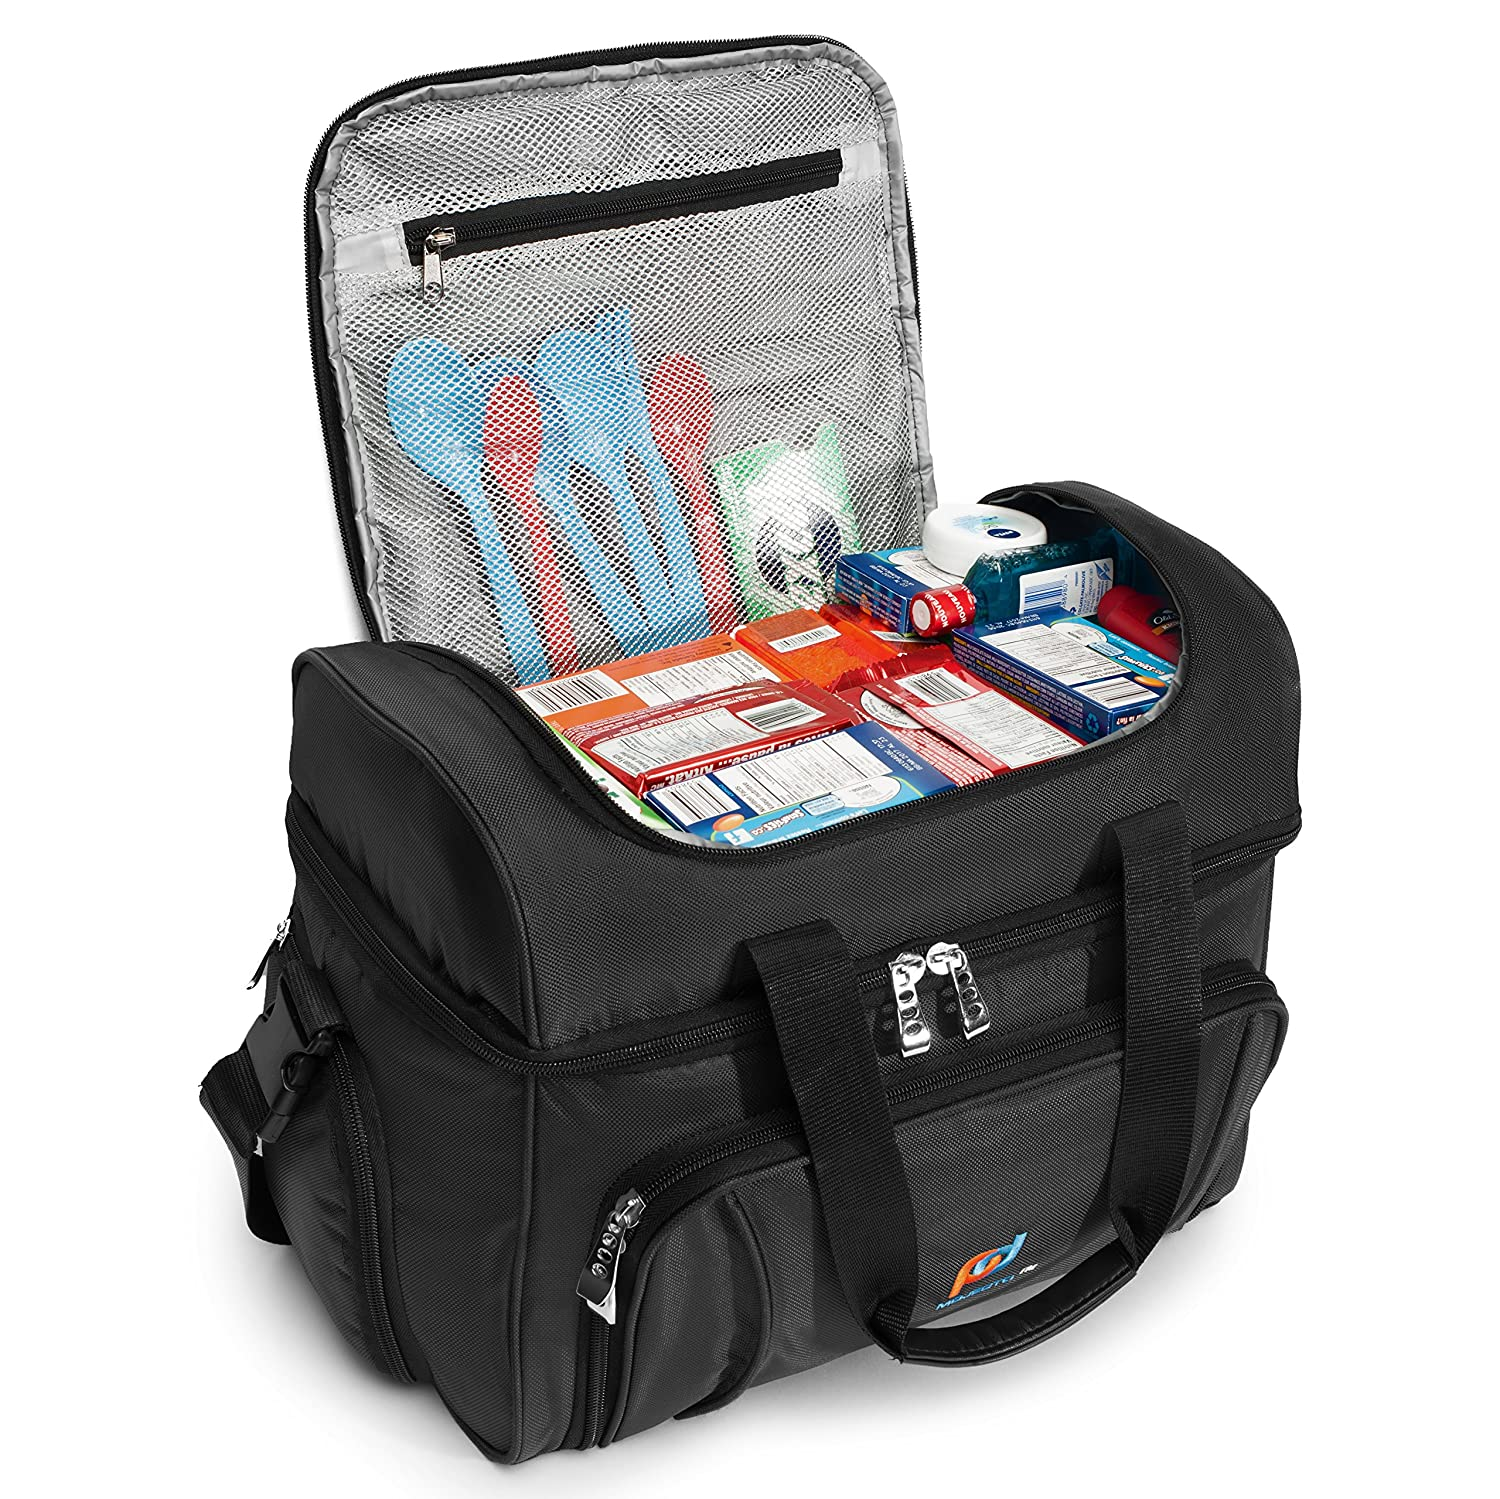 MOJECTO Cooler Bag-12x10x6.5-Inch.Two Insulated Compartments, Heavy Duty Polyester, High Density Insulation Hot or Cold , 2 Heat Sealed Removable Peva Liner, Many Pockets, Strong Double Zipper